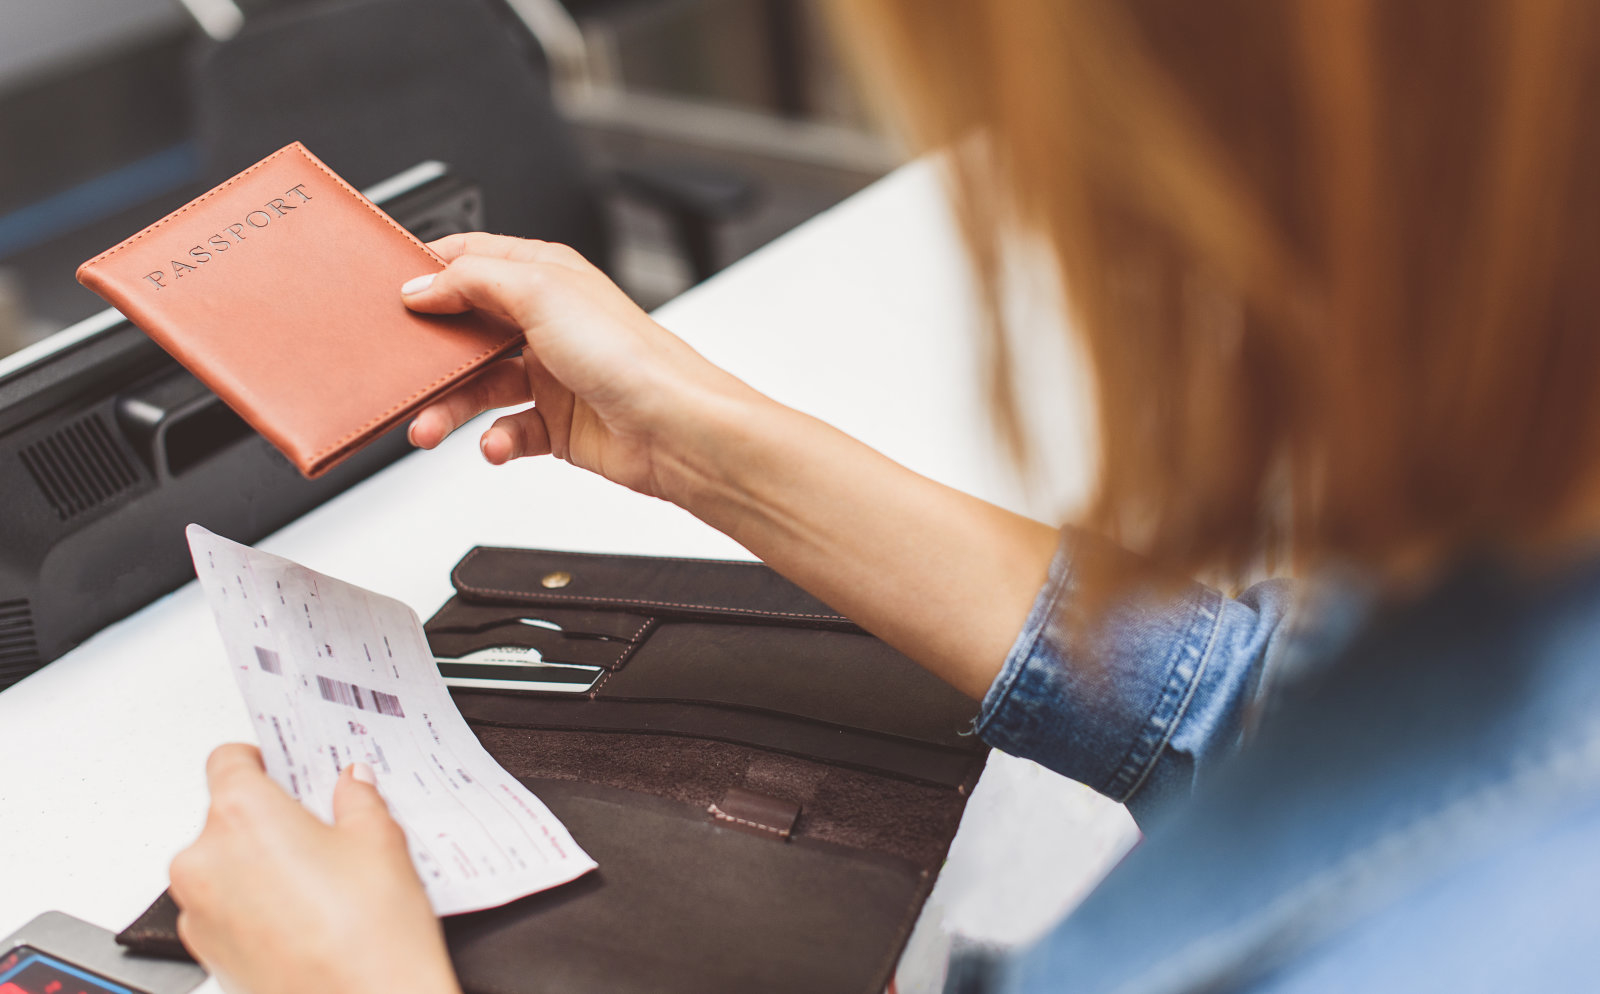 Young female passenger is giving her passport to check-in officer. Close up of her hands holding flight ticket